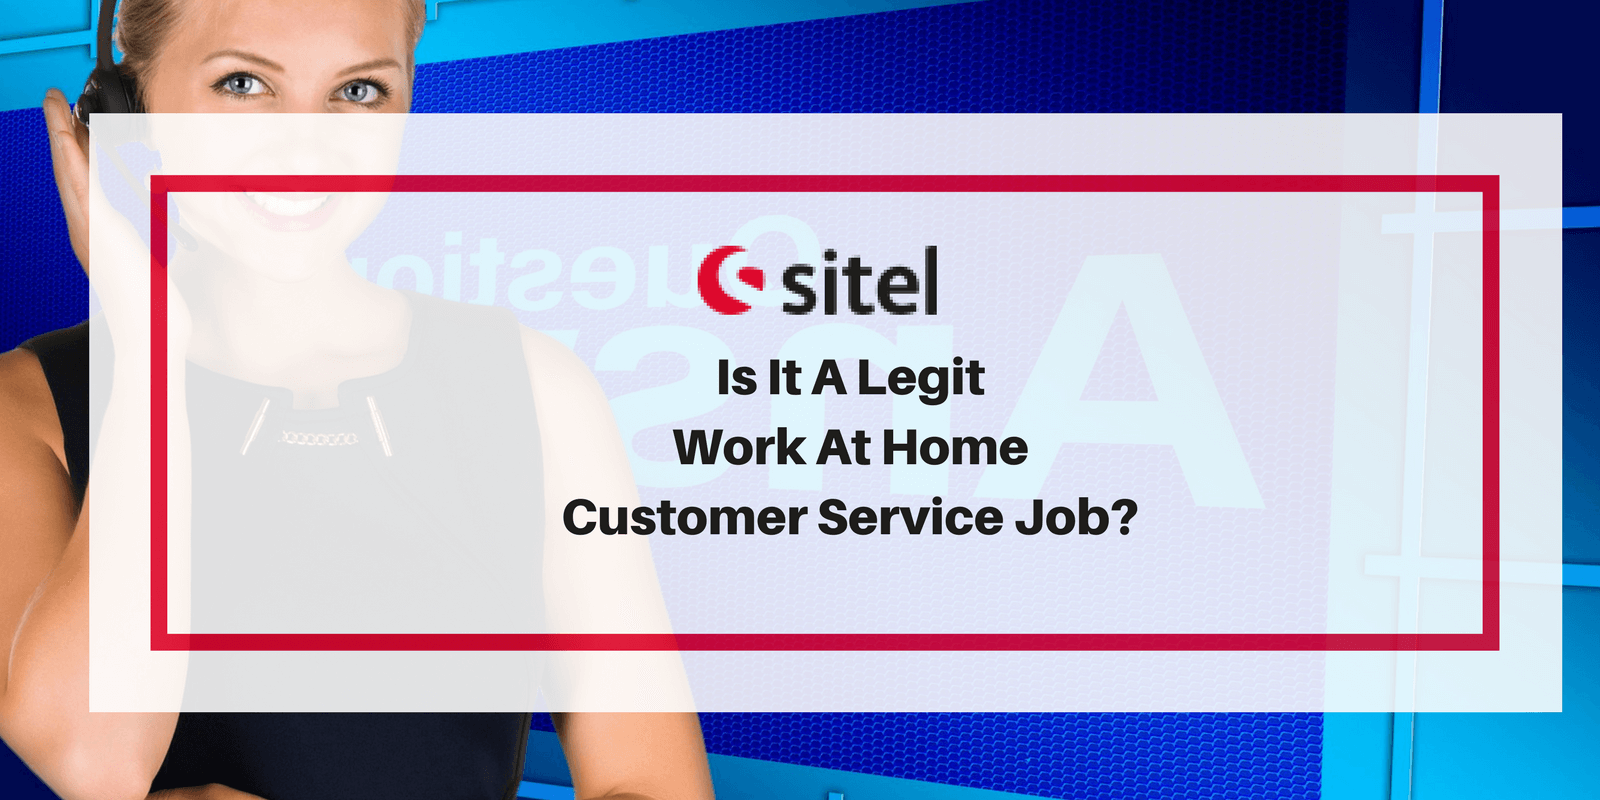 Sitel Review Is It A Legit Work At Home Customer Service Job